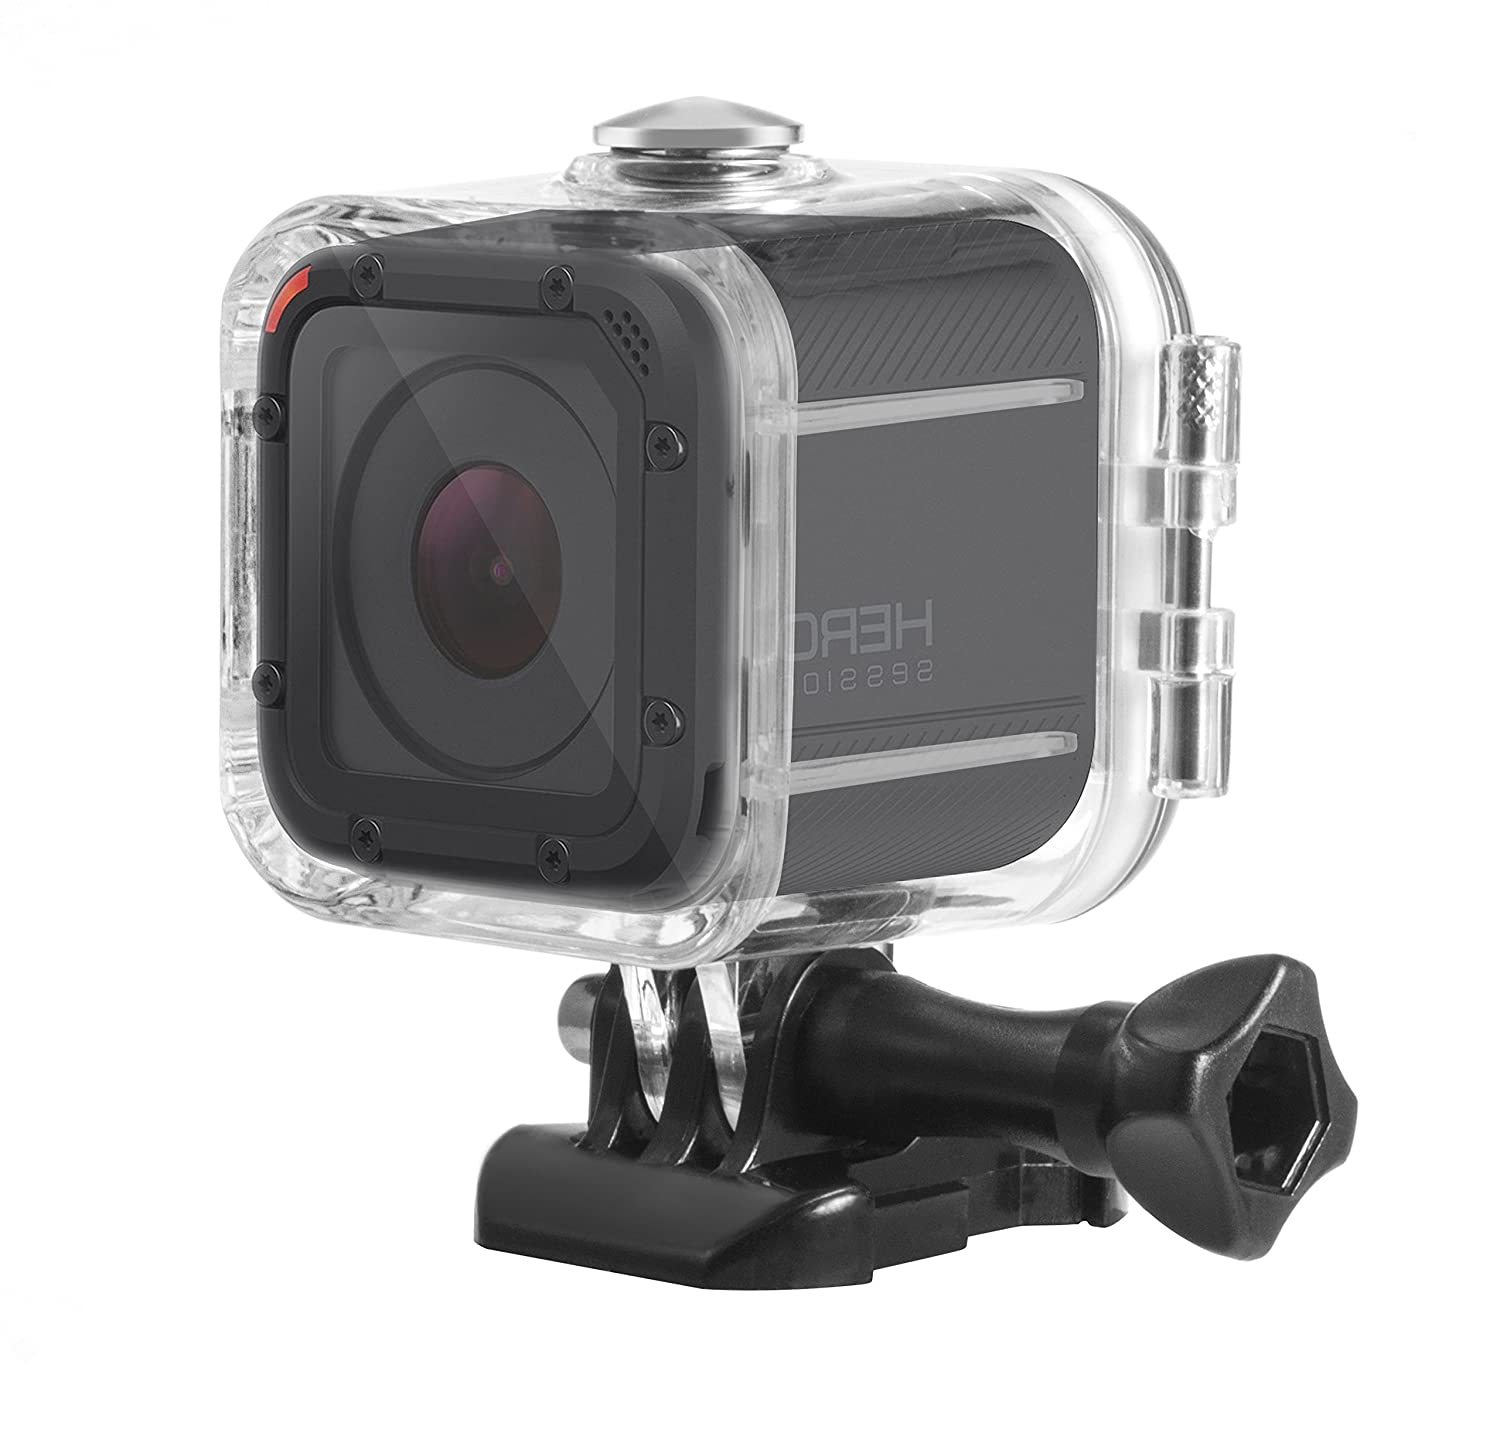 Deyard Waterproof Housing Standard Protective Case for GoPro Hero 5 Session Hero 4 Session Camcorder with Bracket & Screw TS001